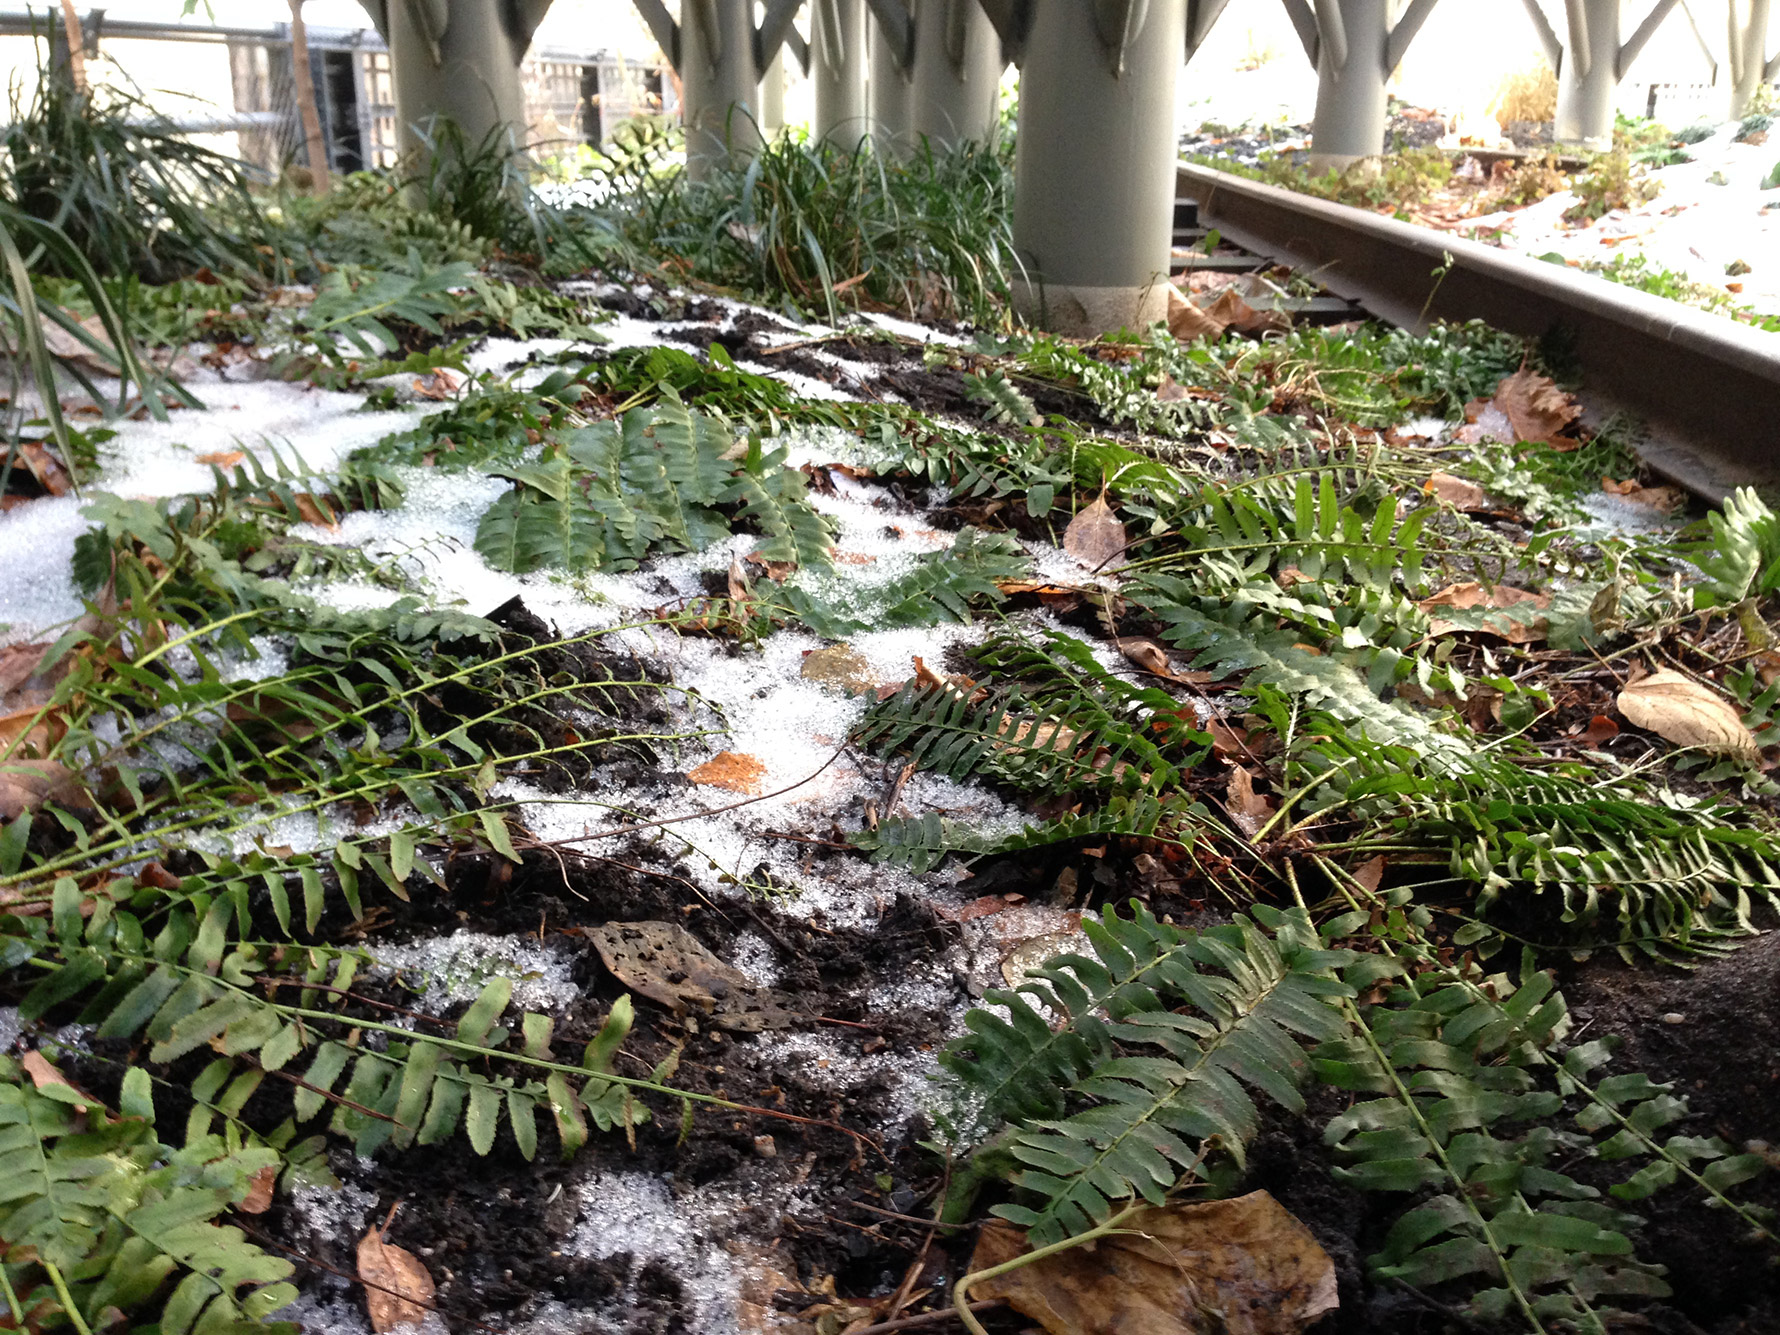 Snow on ferns on the ground